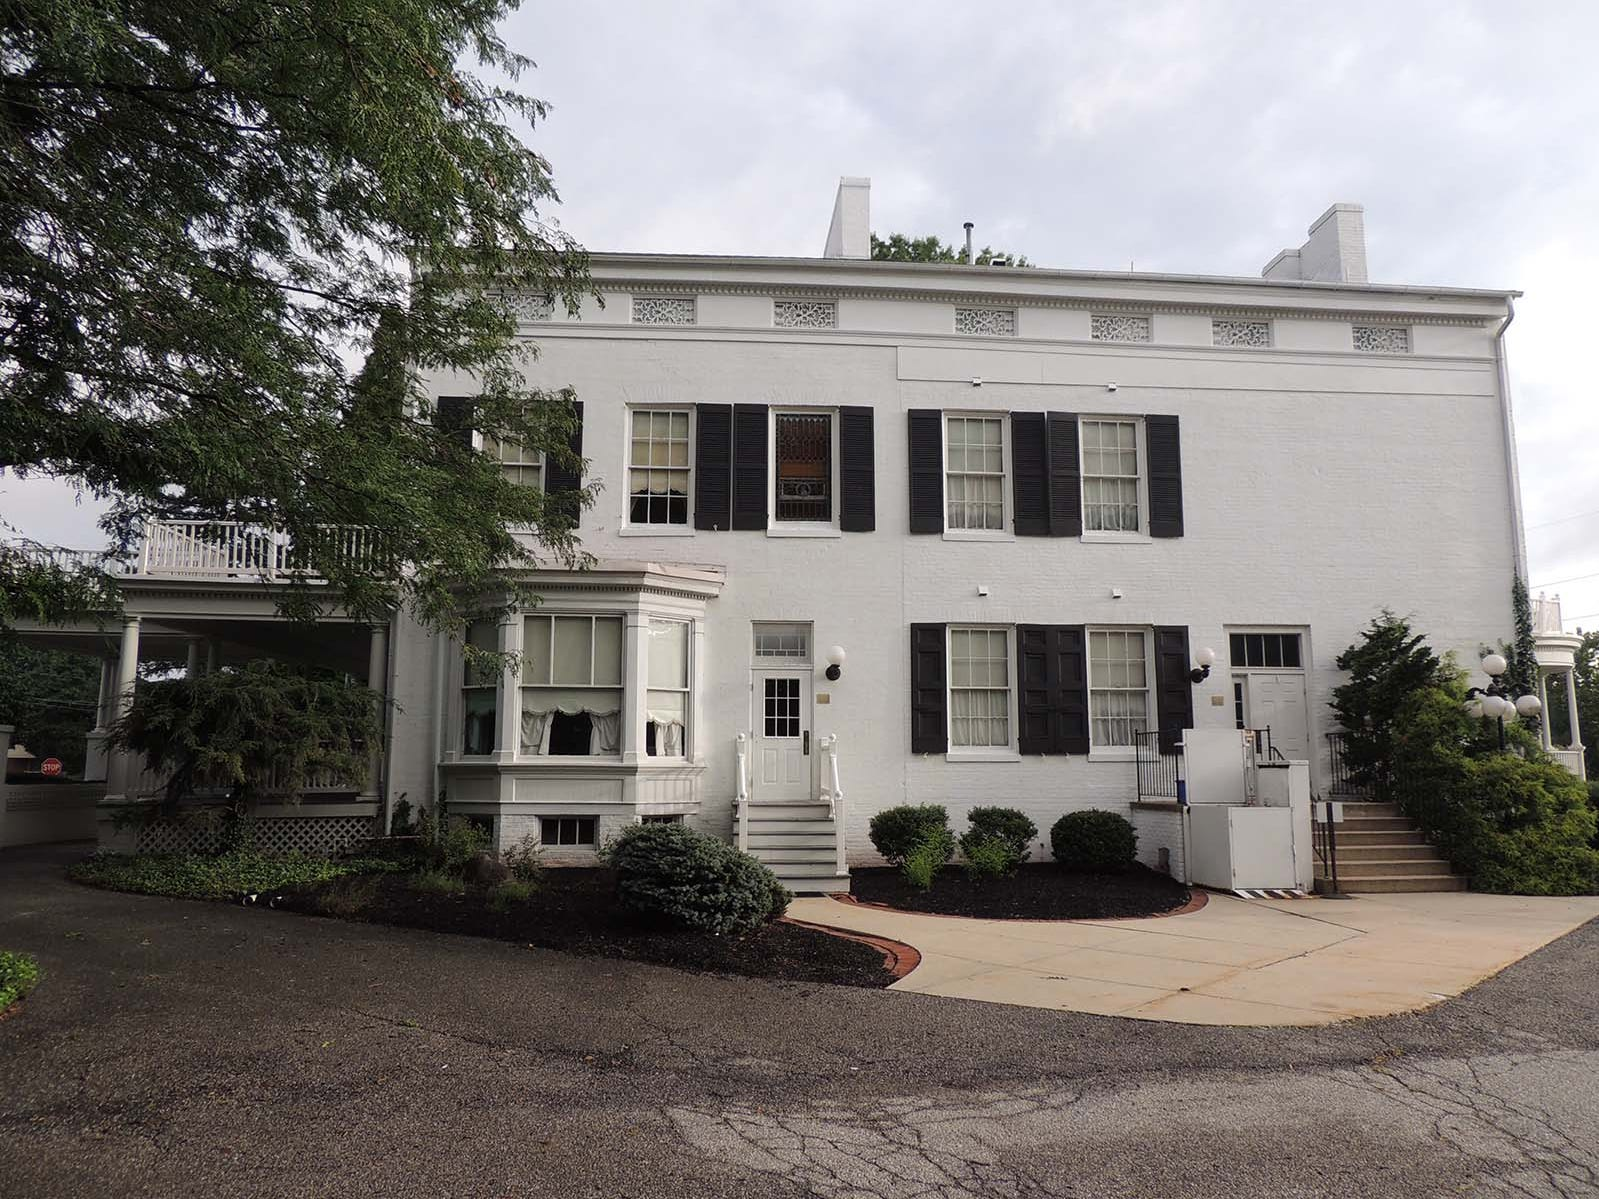 The 1835 Emwood Mansion on Belmont Street in Spring Garden Township is for sale.